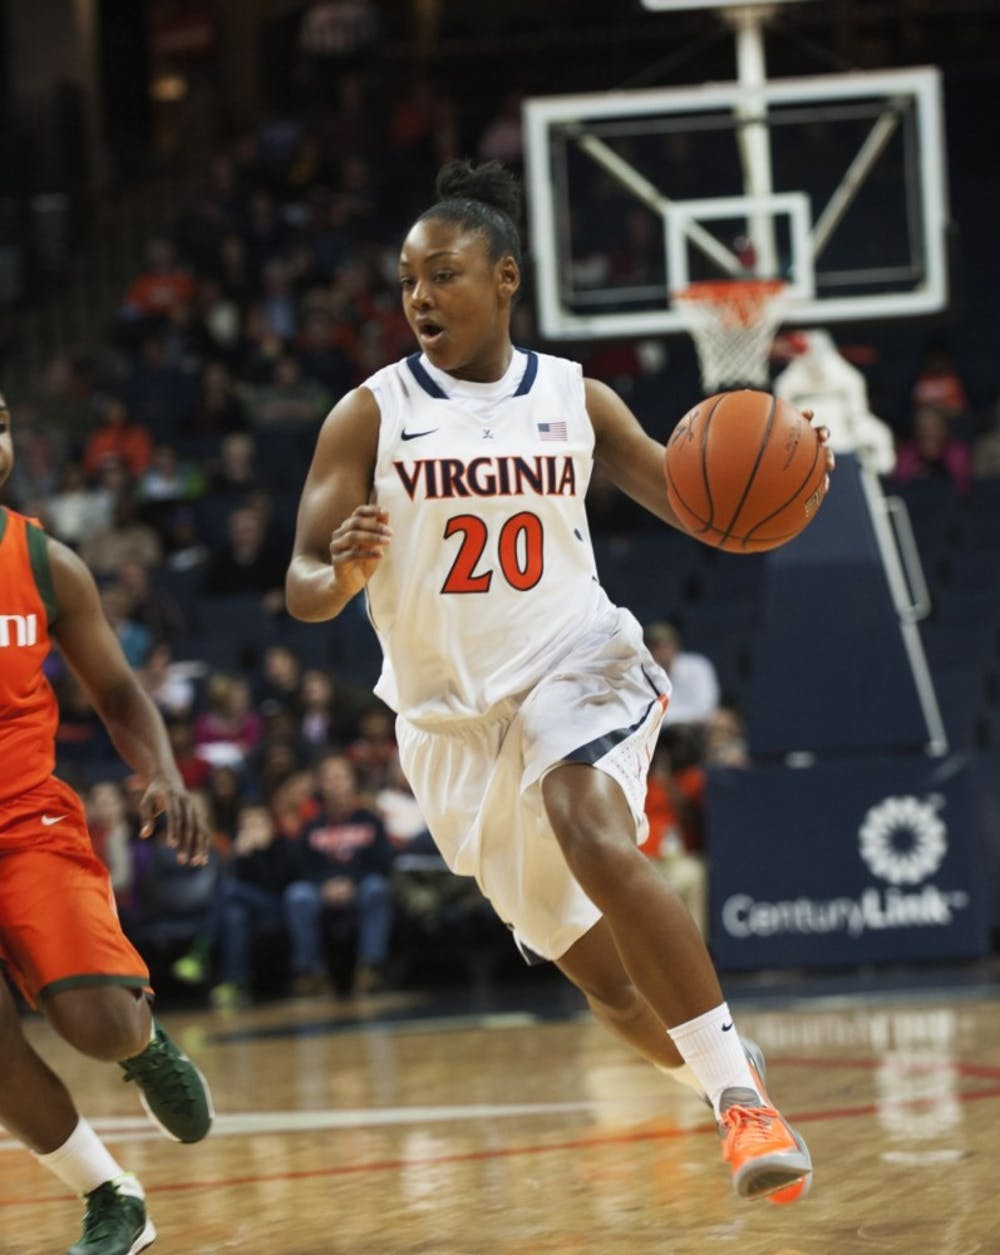 <p>Senior guard Faith Randolph led Virginia in scoring last season, pouring in 16.4 points per game. She also shot a sterling 90.7 percent from the free throw line.&nbsp;</p>